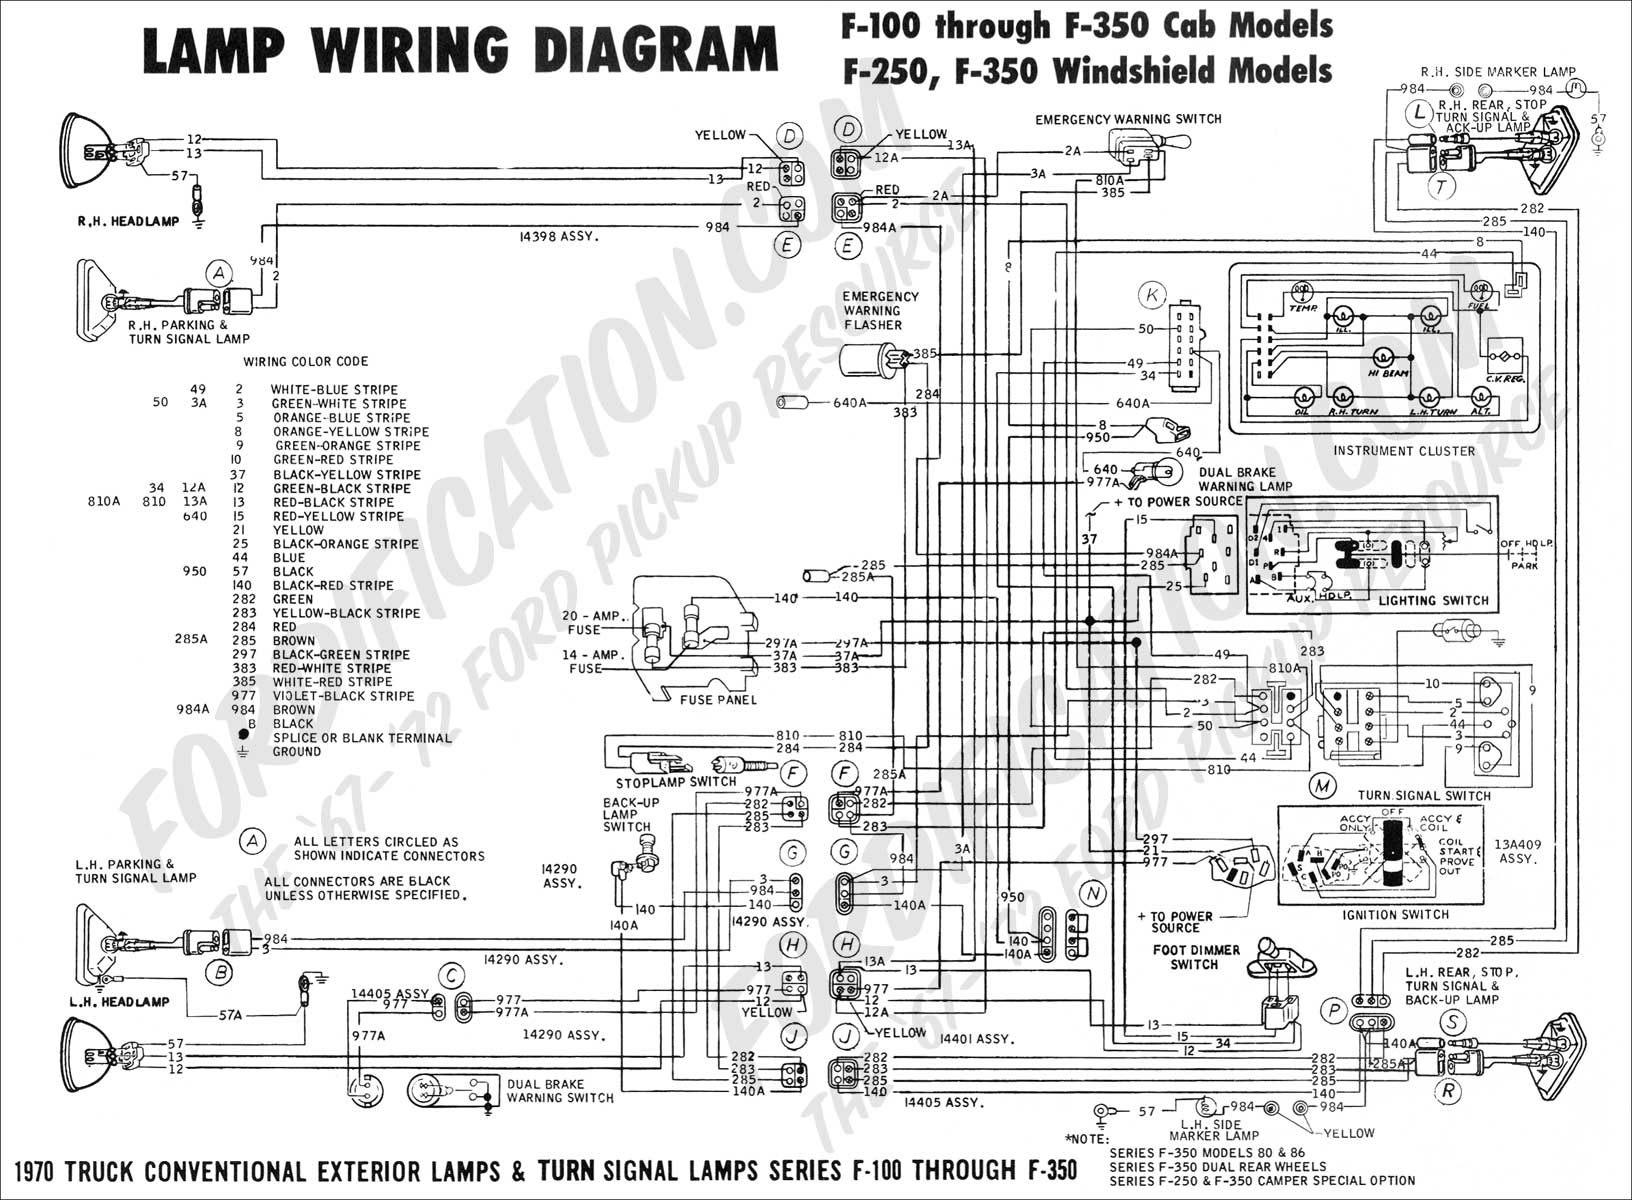 Admirable 4 Way Trailer Wiring Diagram Ford Ranger Wiring Diagram Data Schema Wiring 101 Mecadwellnesstrialsorg